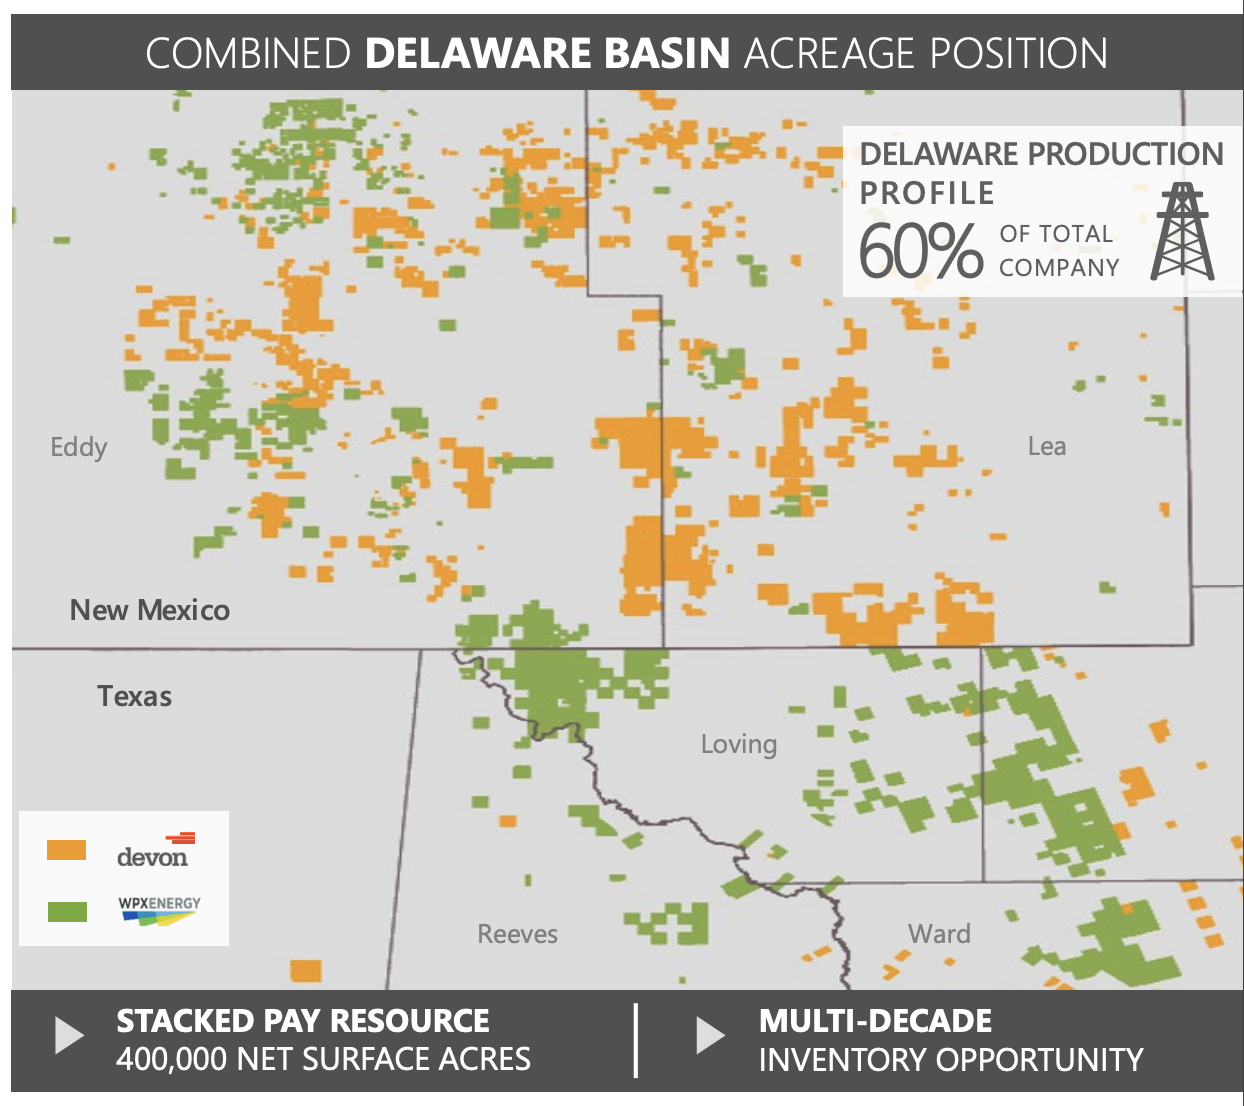 Combined Delaware Basin Acreage Position Asset Map